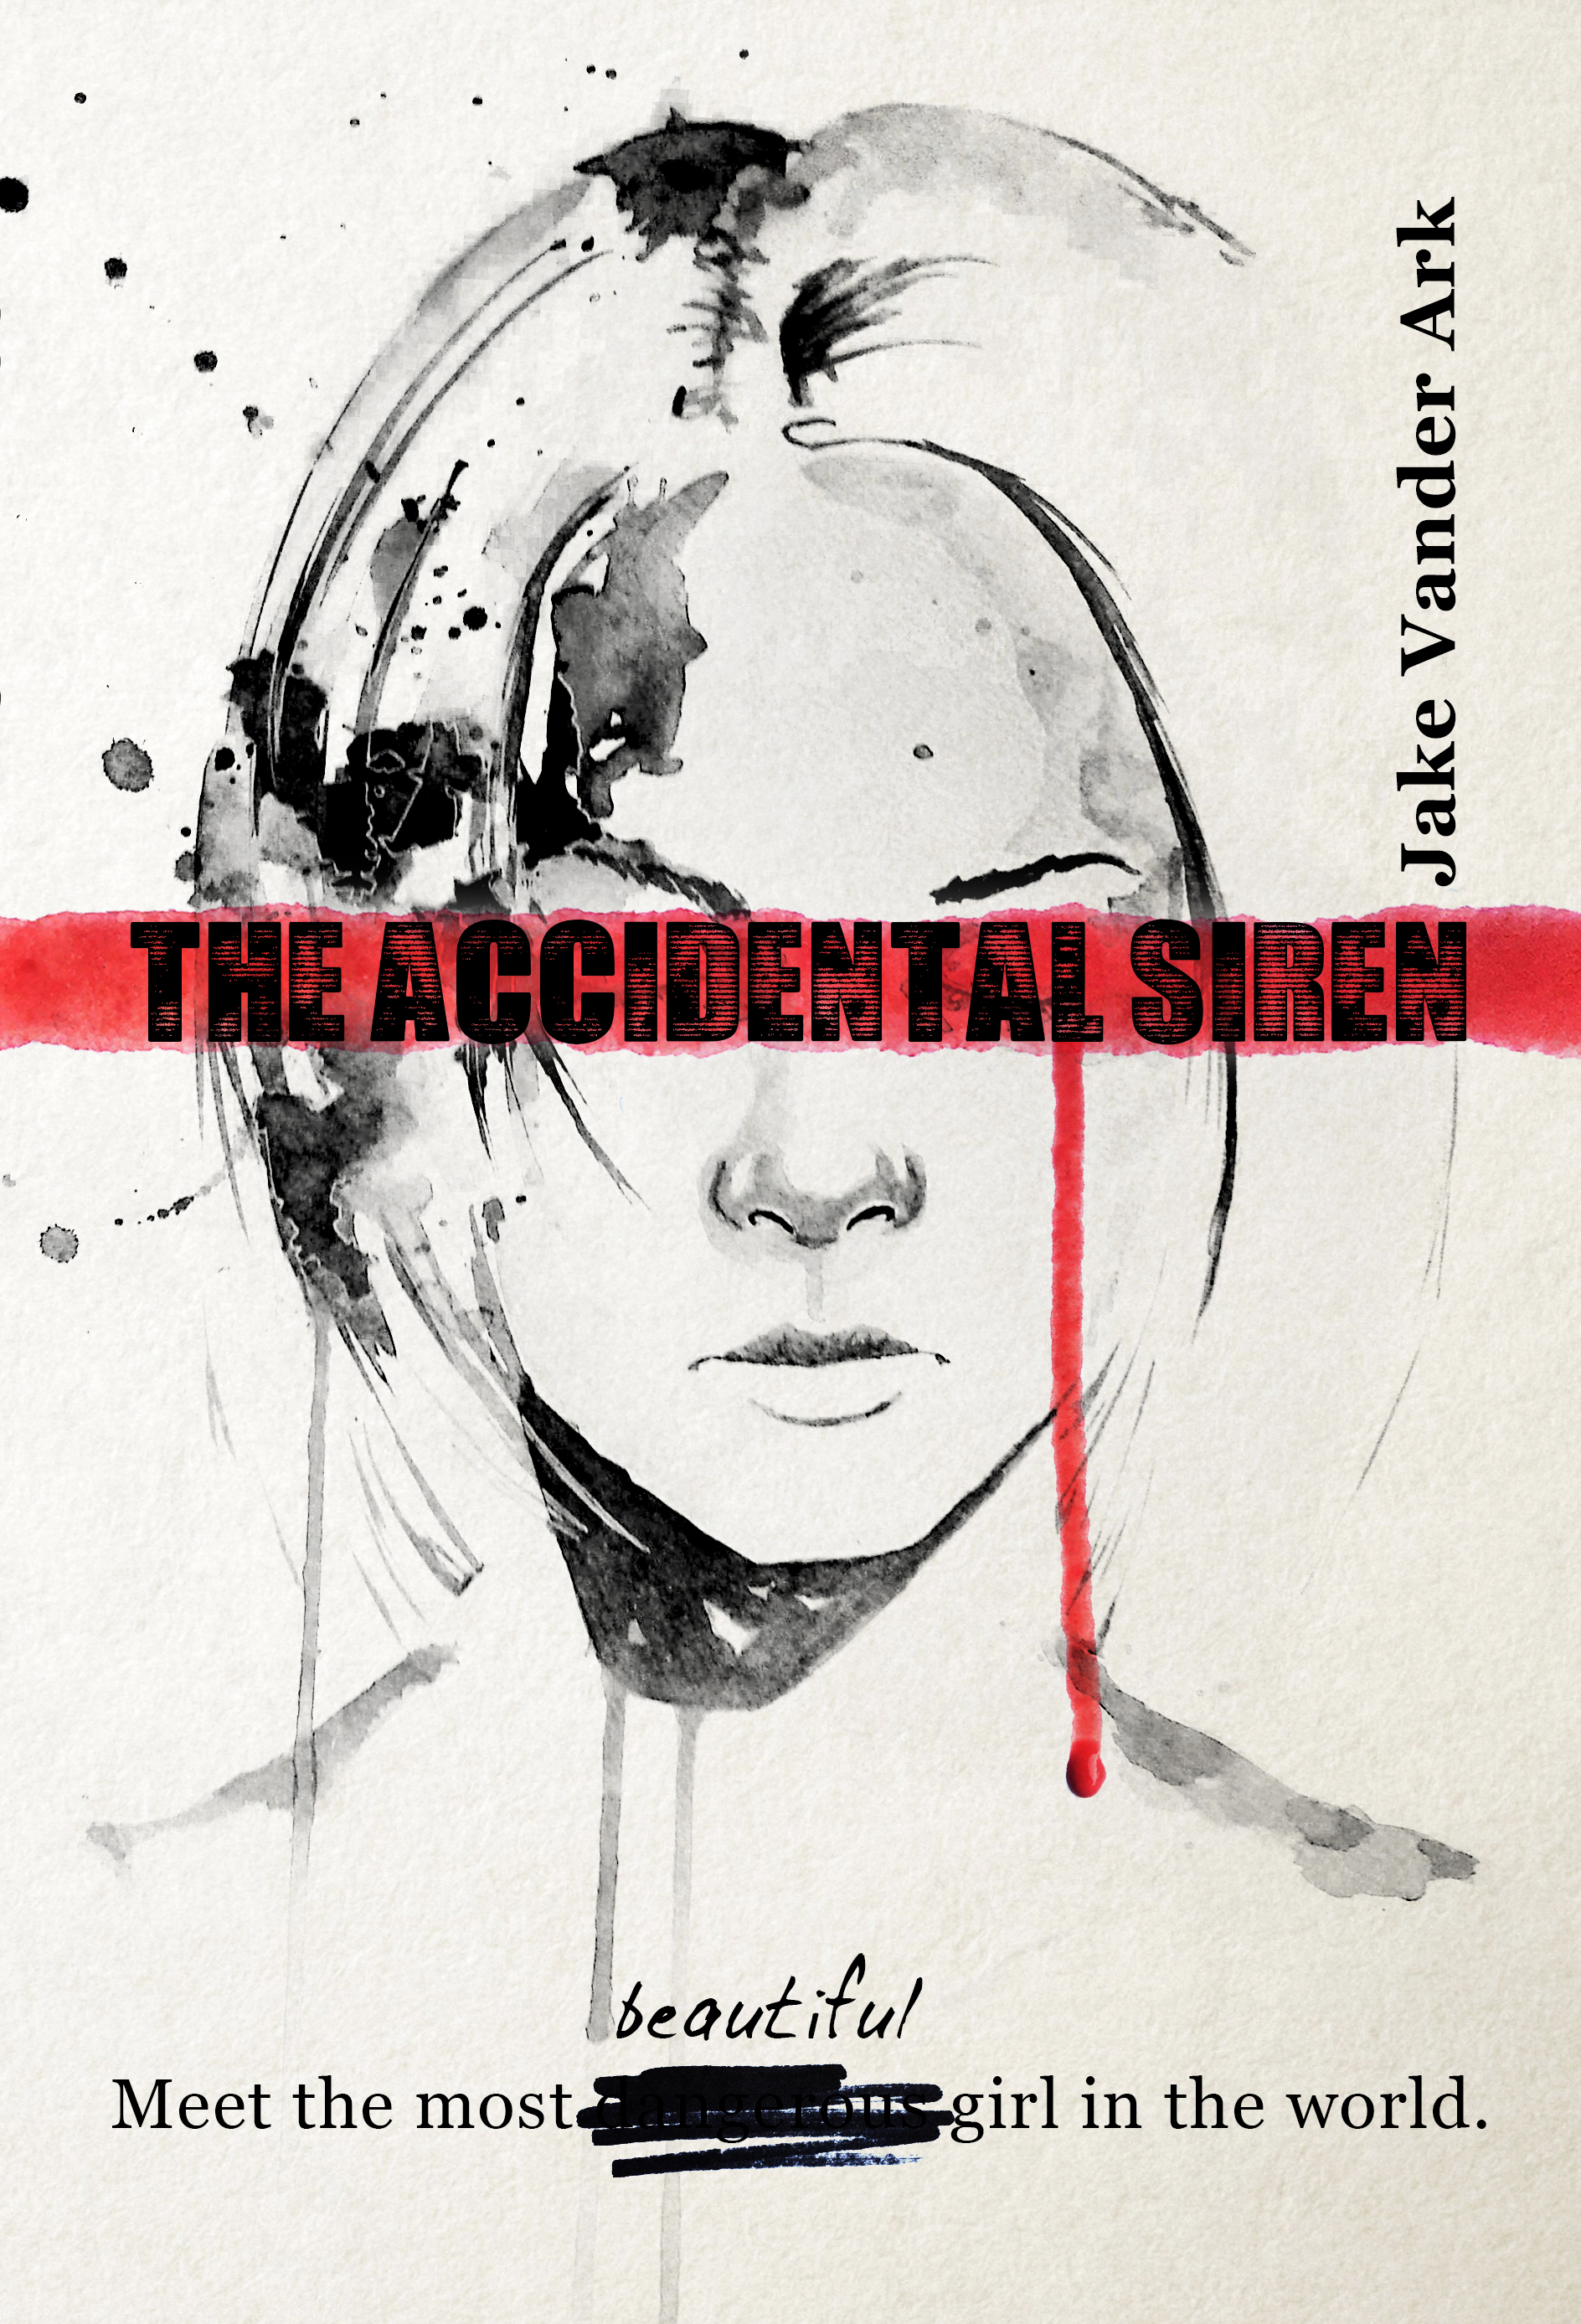 The Accidental Siren Cover (Third Edition Paperback Cover) B&W.jpg